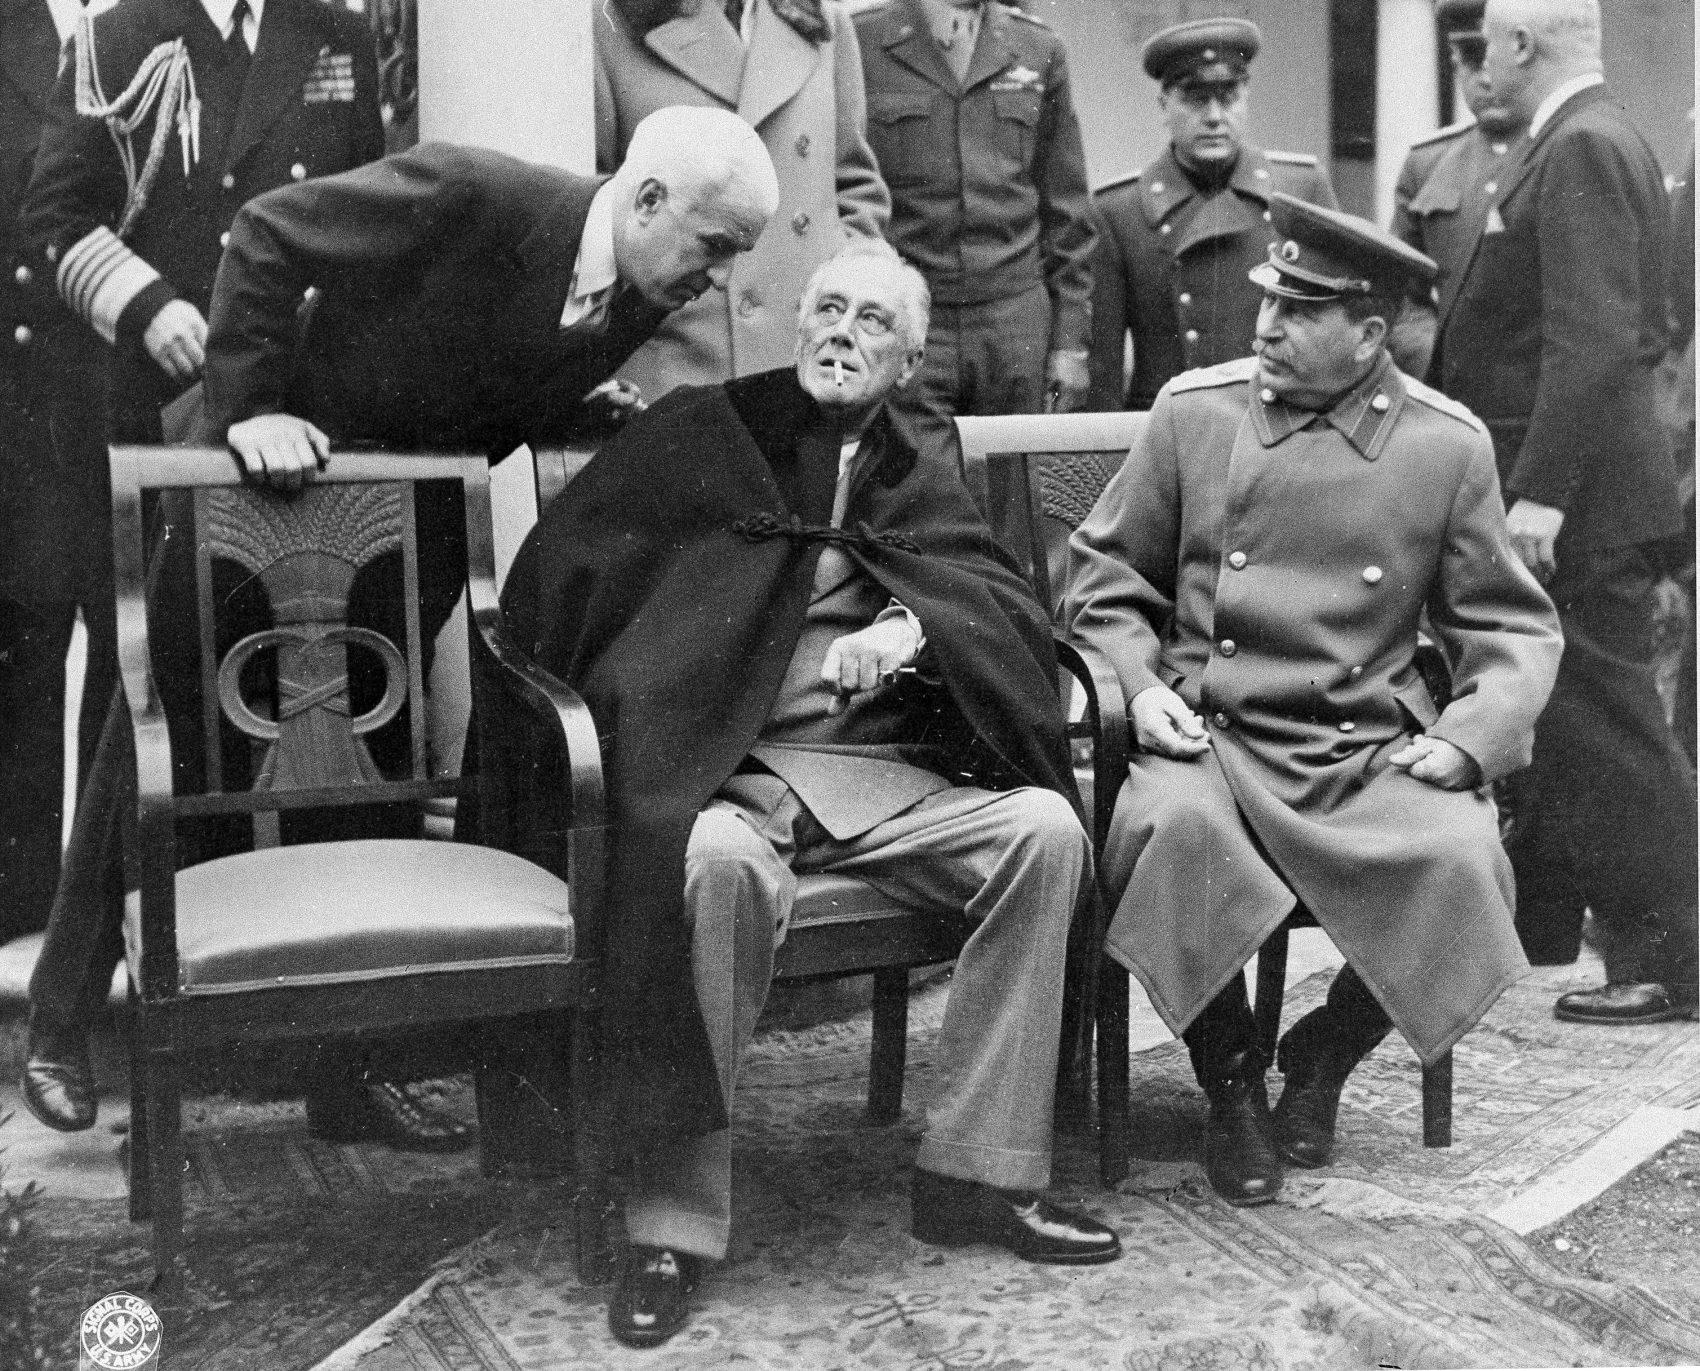 a history of the yalta conference in crimea Choose from 233 different sets of yalta history flashcards on quizlet  clo history: yalta conference  yalta, in crimea a part of the ussr.